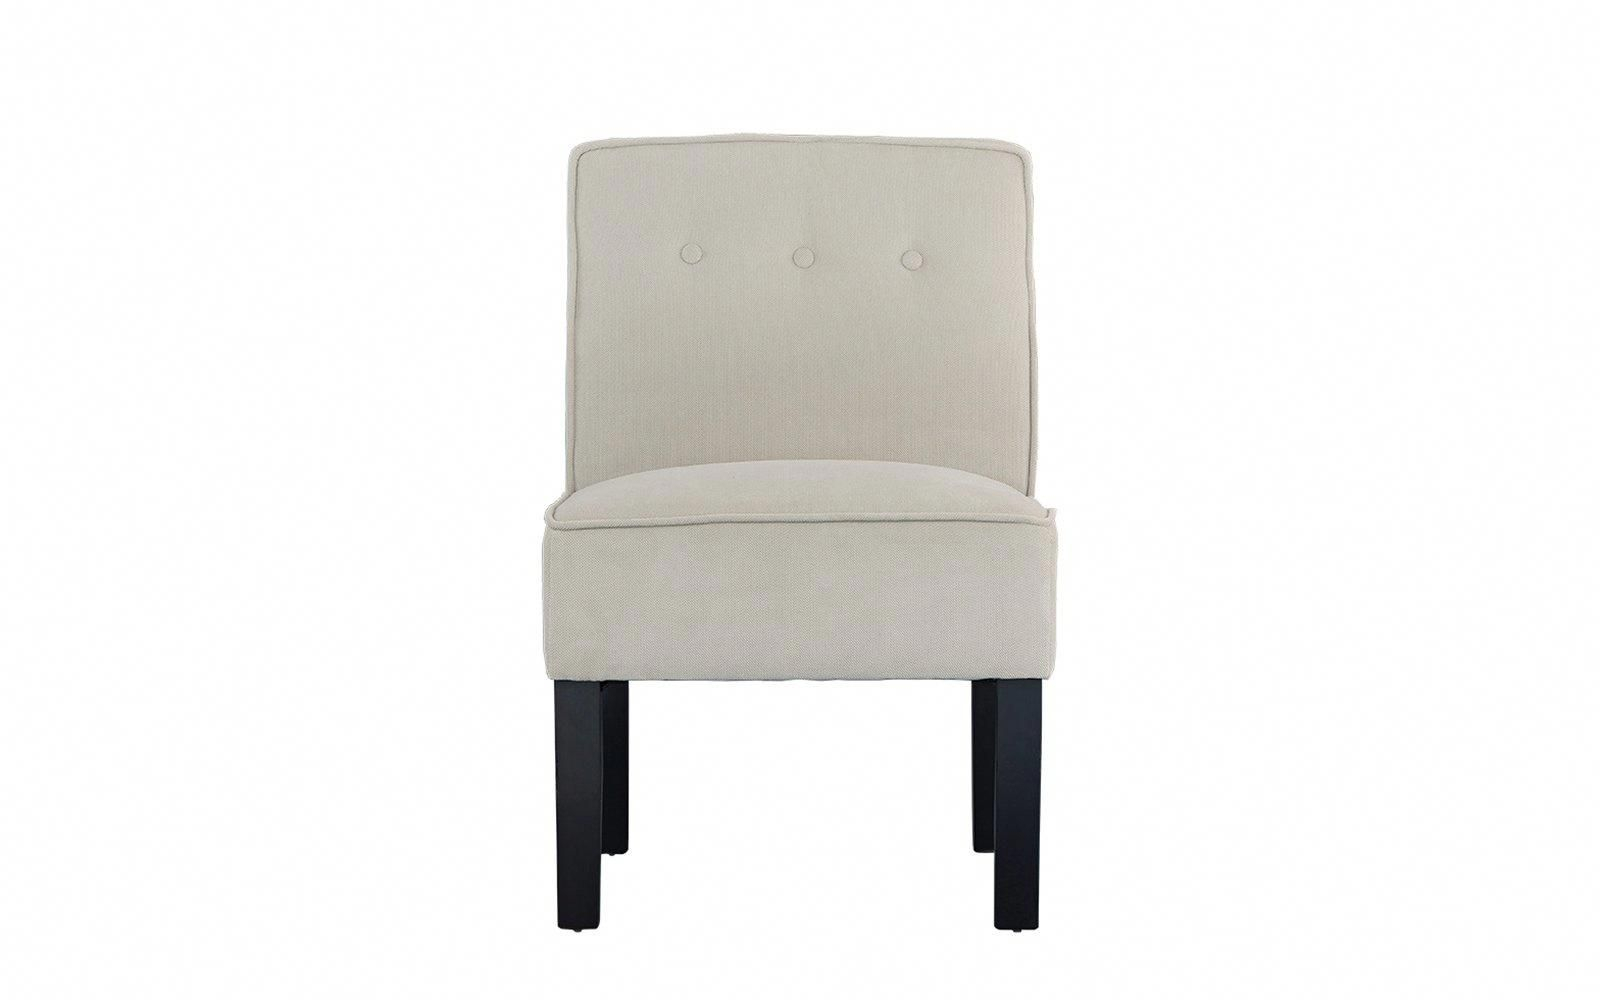 Ames Classic Armless Linen Accent Chair #ameschair | Oversized Chair Within Ames Arm Sofa Chairs (View 13 of 25)